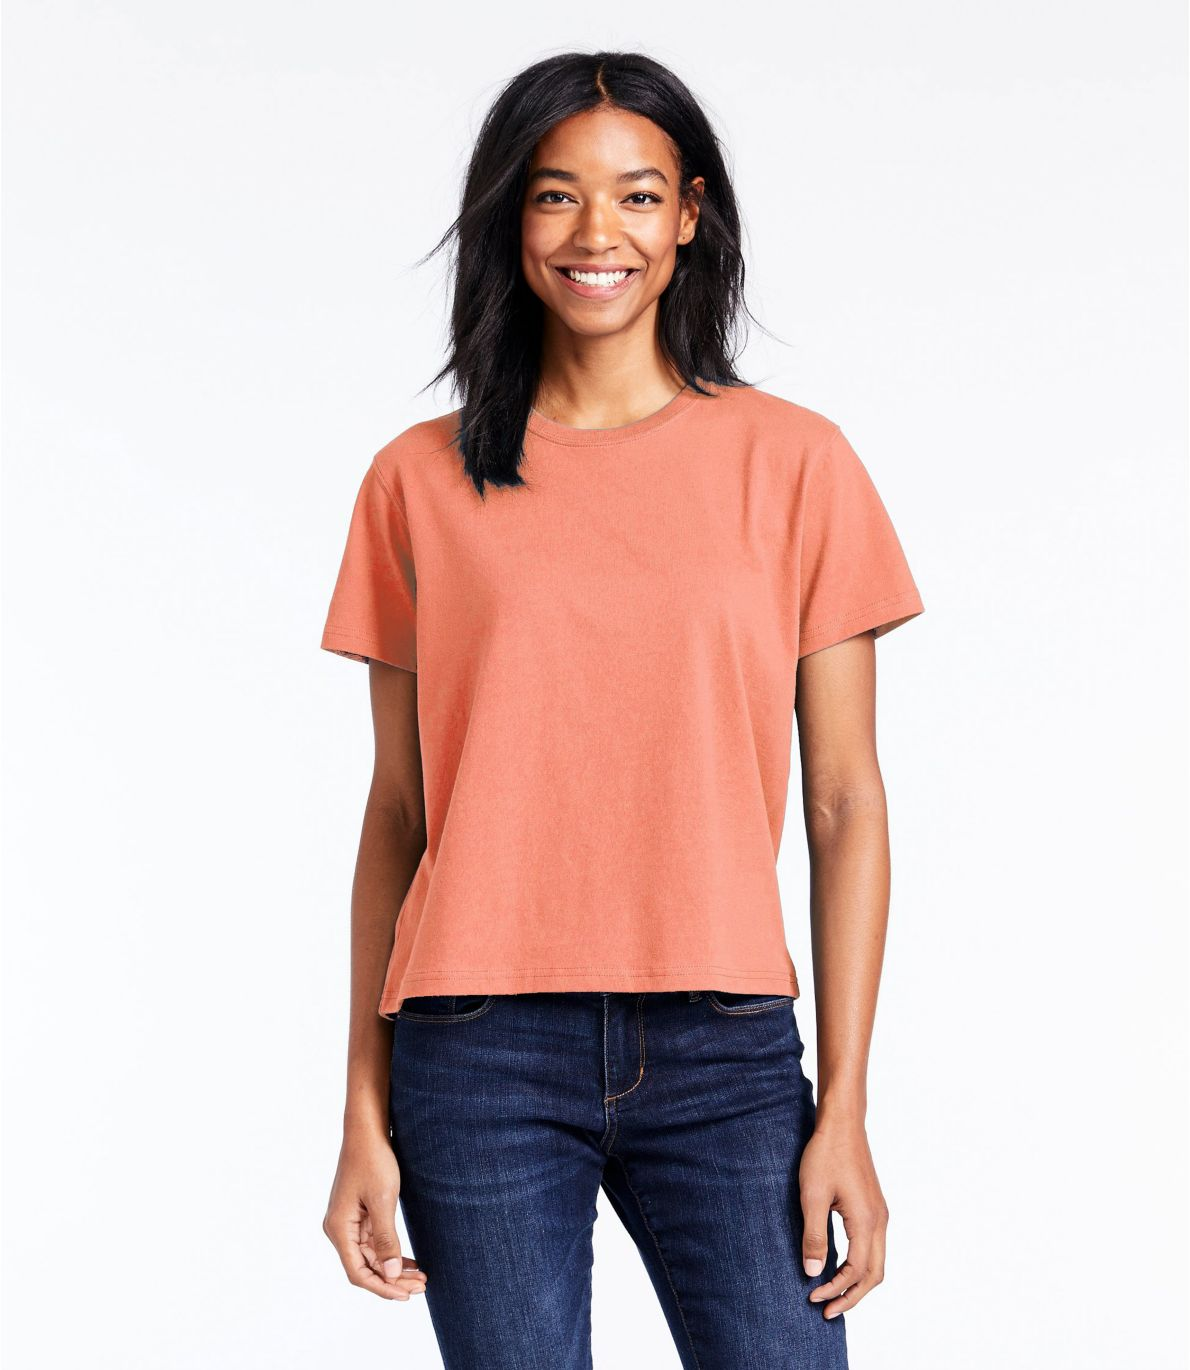 Women's Saturday T-Shirt, Crewneck